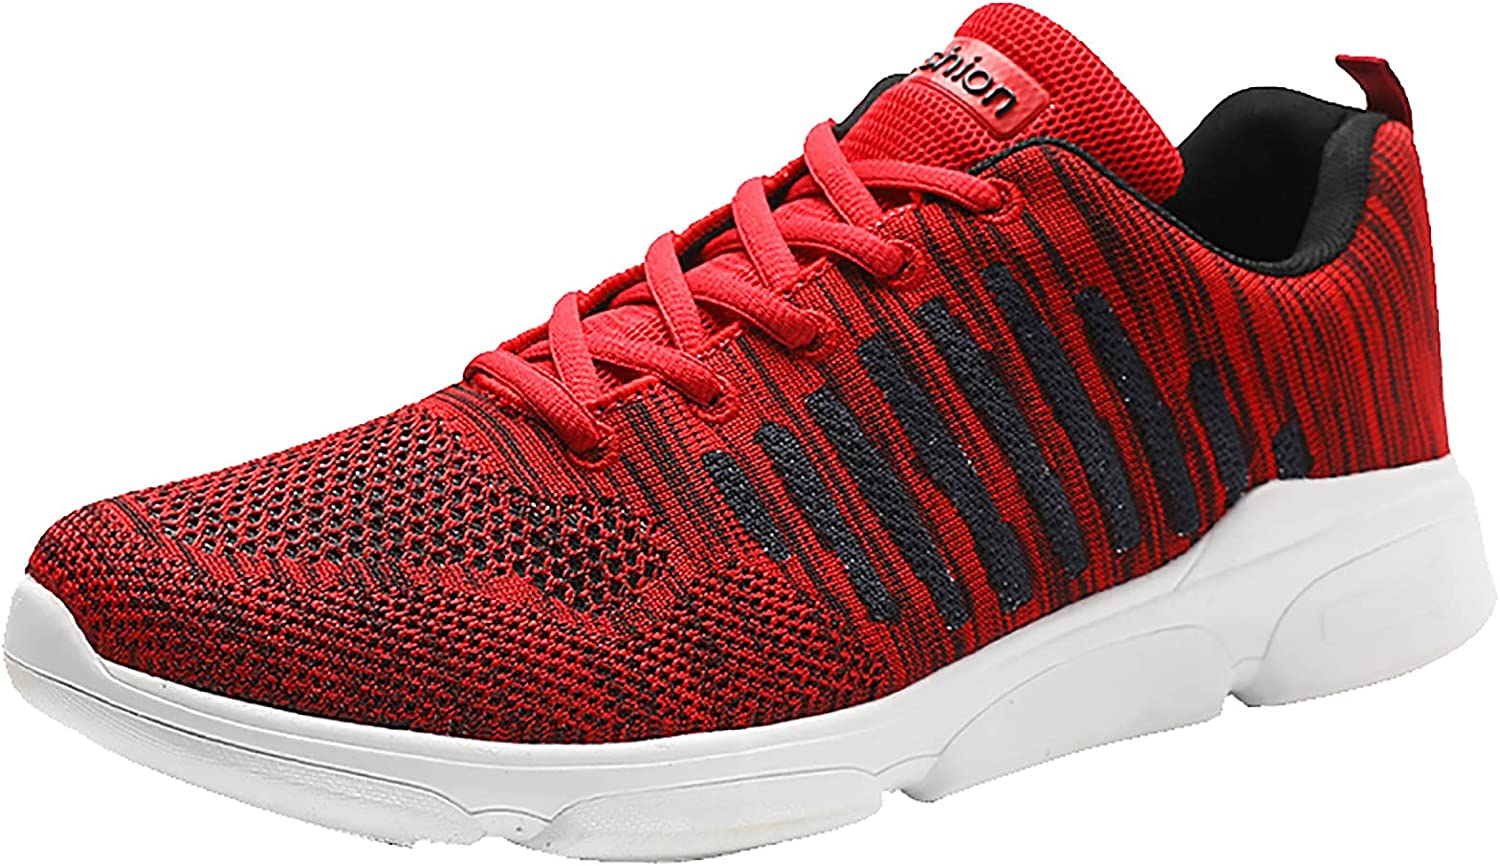 Adeliber New Mens Breathable Sneakers Fashion Casual Comfortable Running Sports Shoes Students Tennis Exercise Fitness Shoes Men Thick Bottom Increased Outdoor Walking Working Shoes